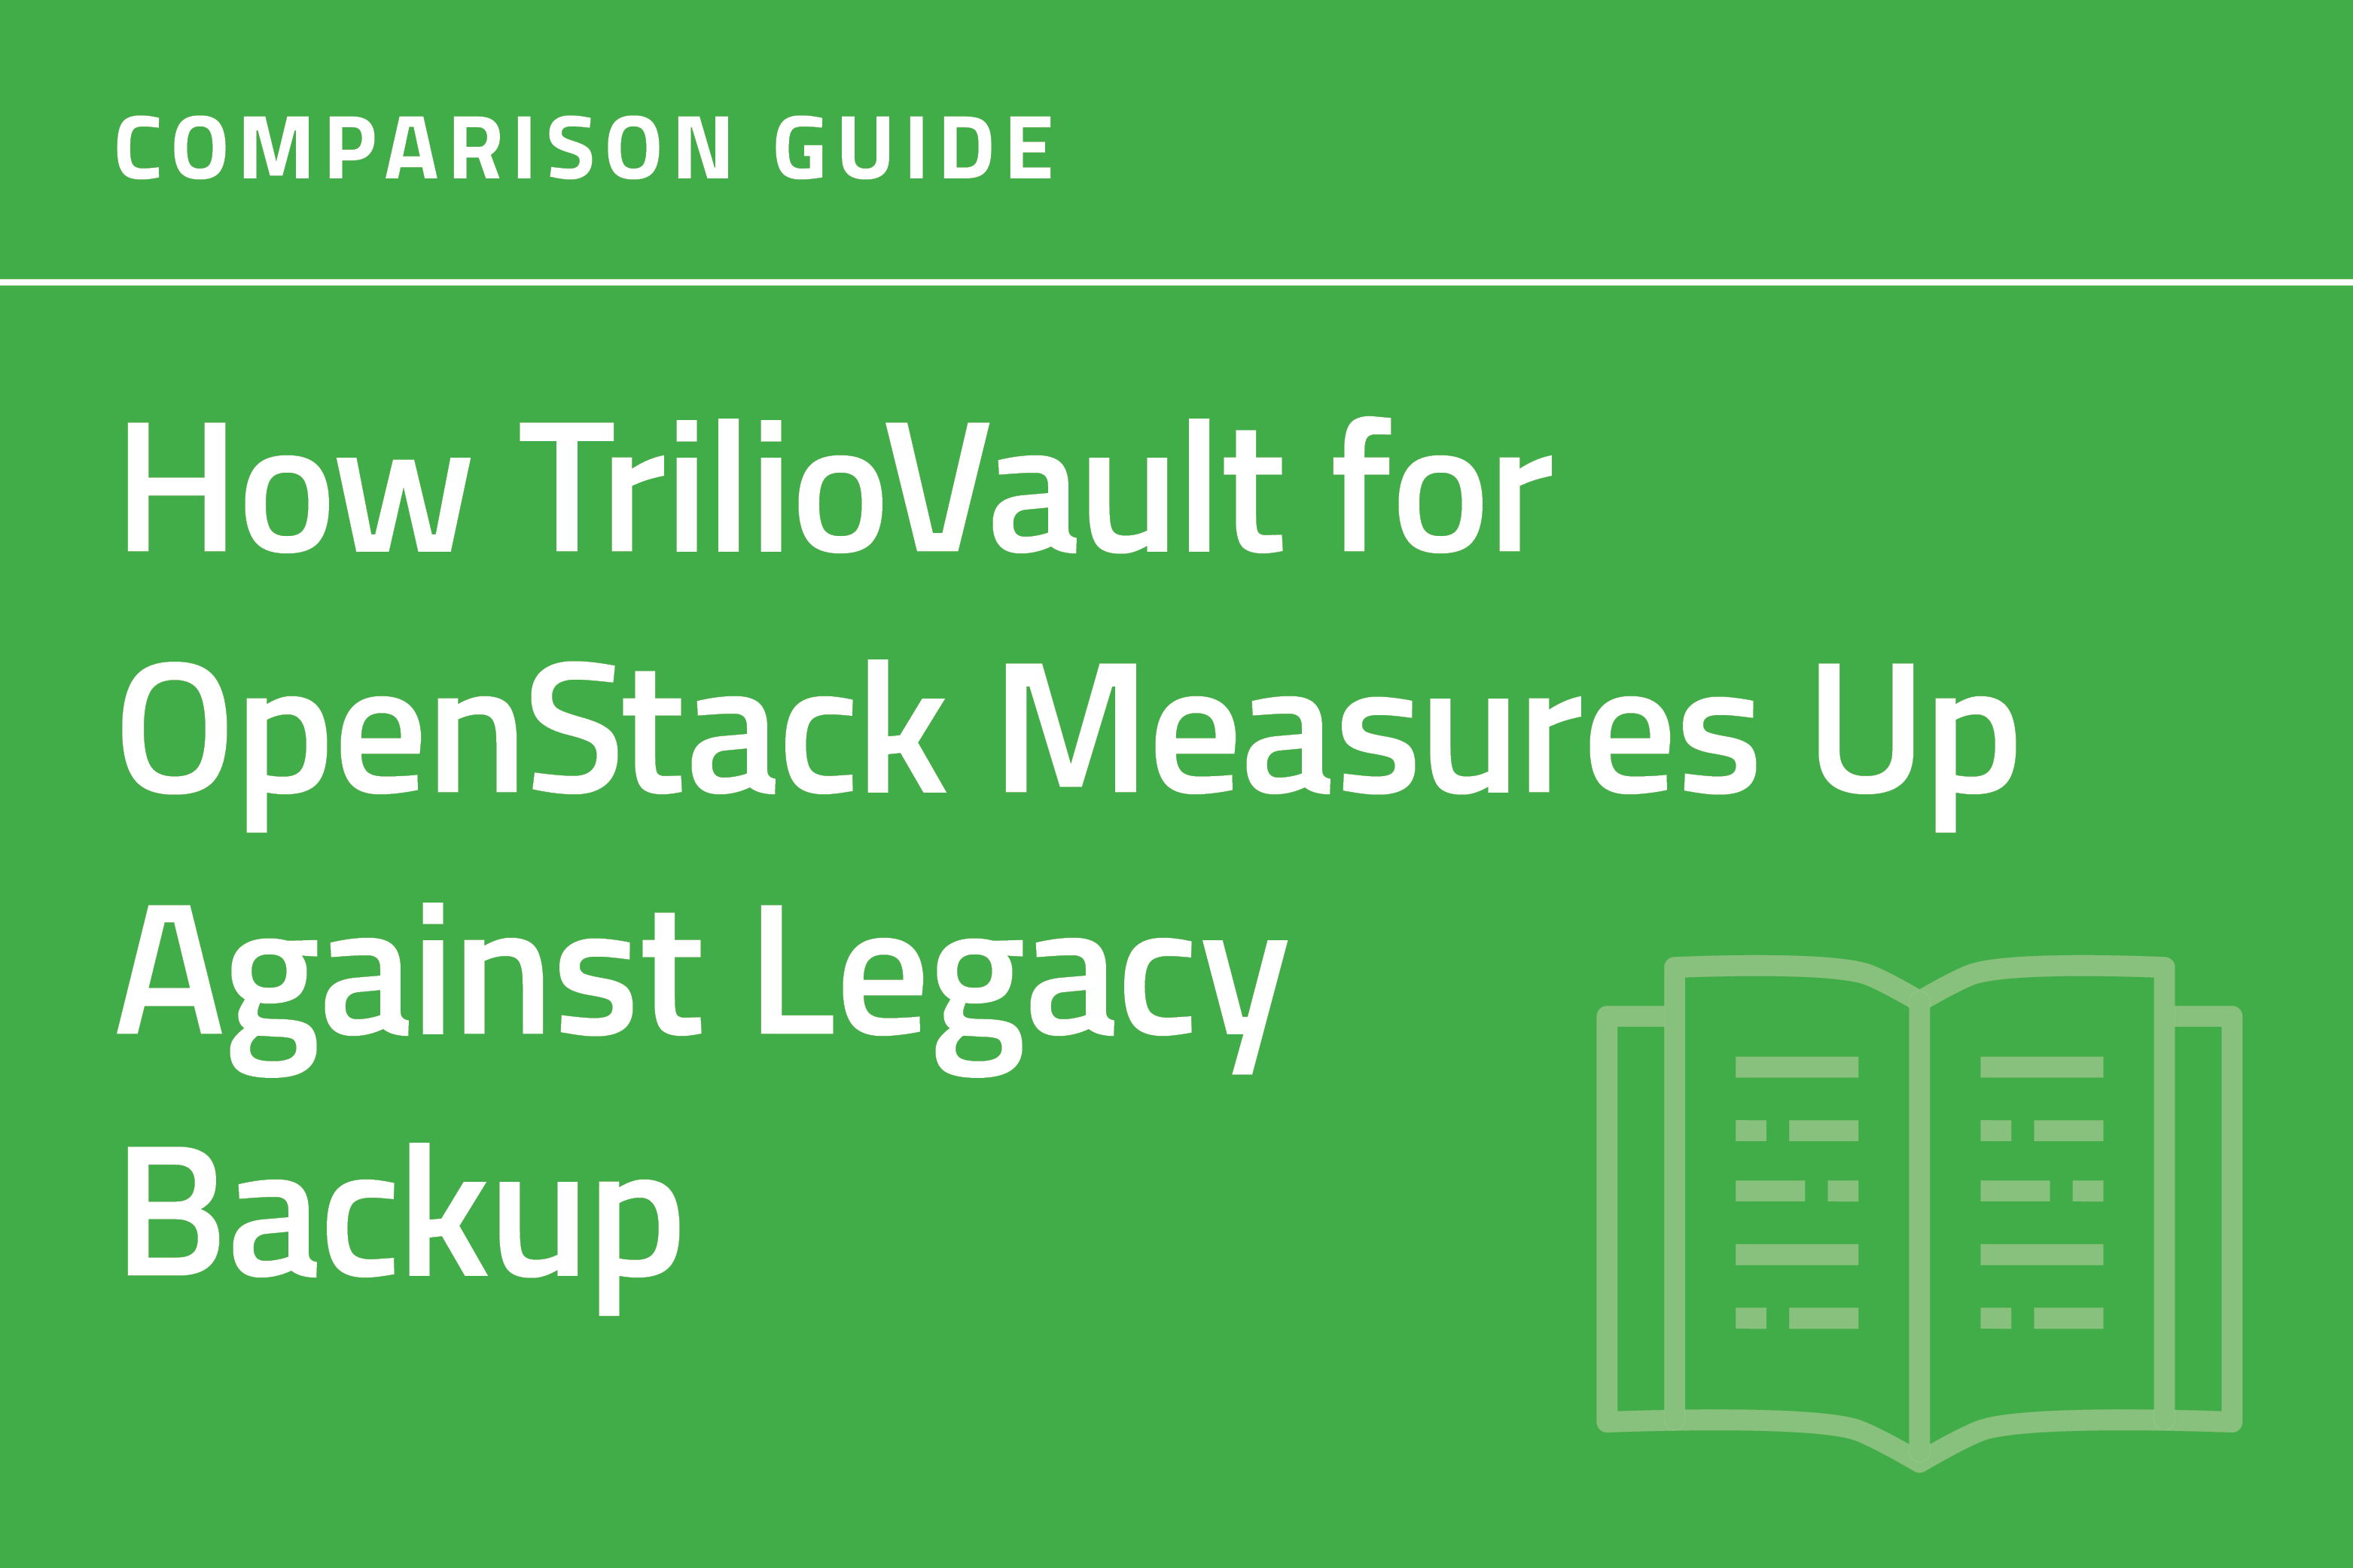 How TrilioVault Stacks Up Against Legacy Data Protection: A Comparison Guide